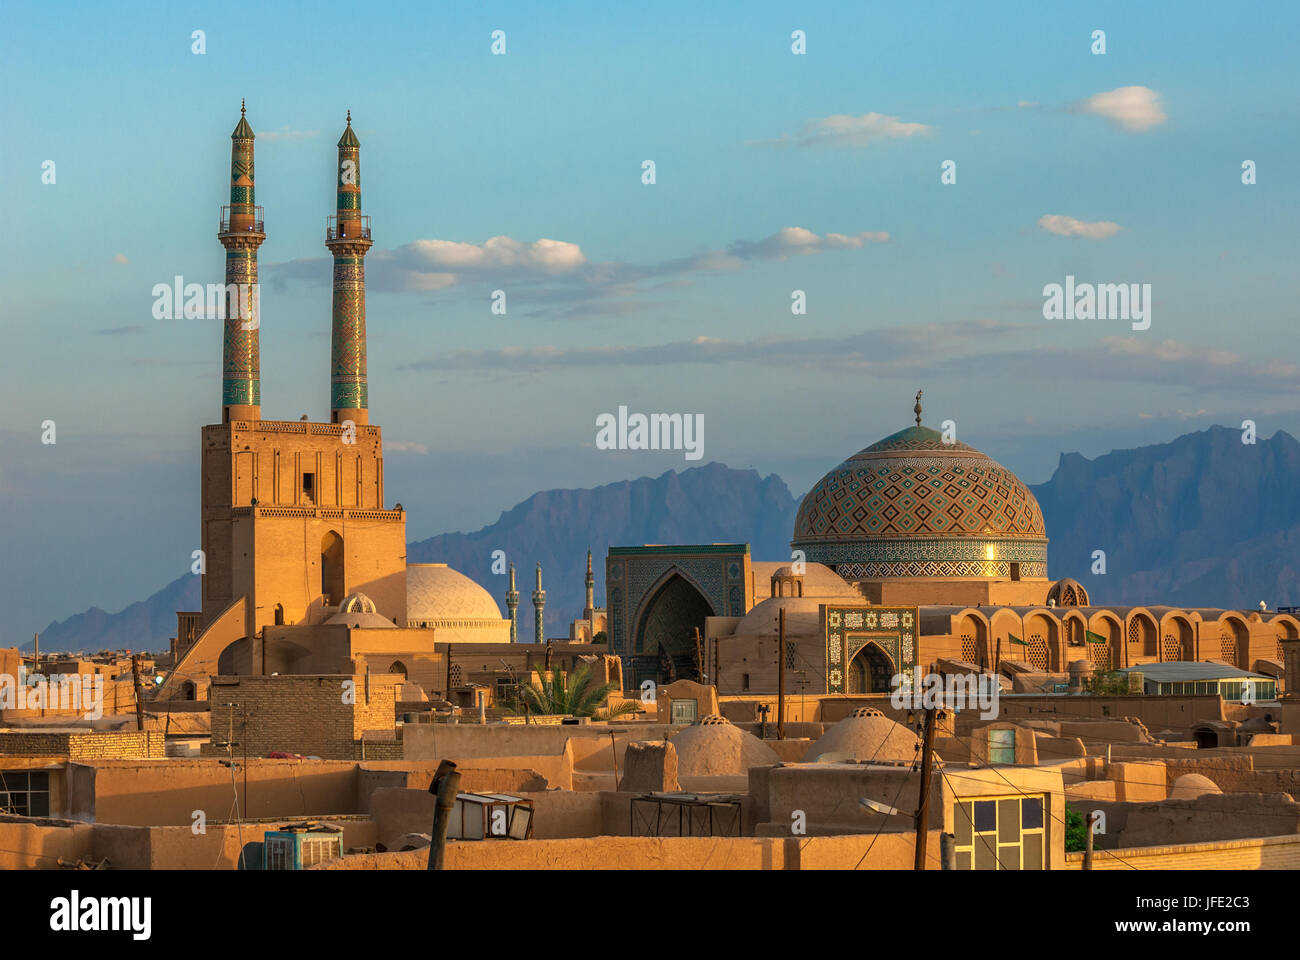 Sunset over ancient city of Yazd, Iran - Stock Image